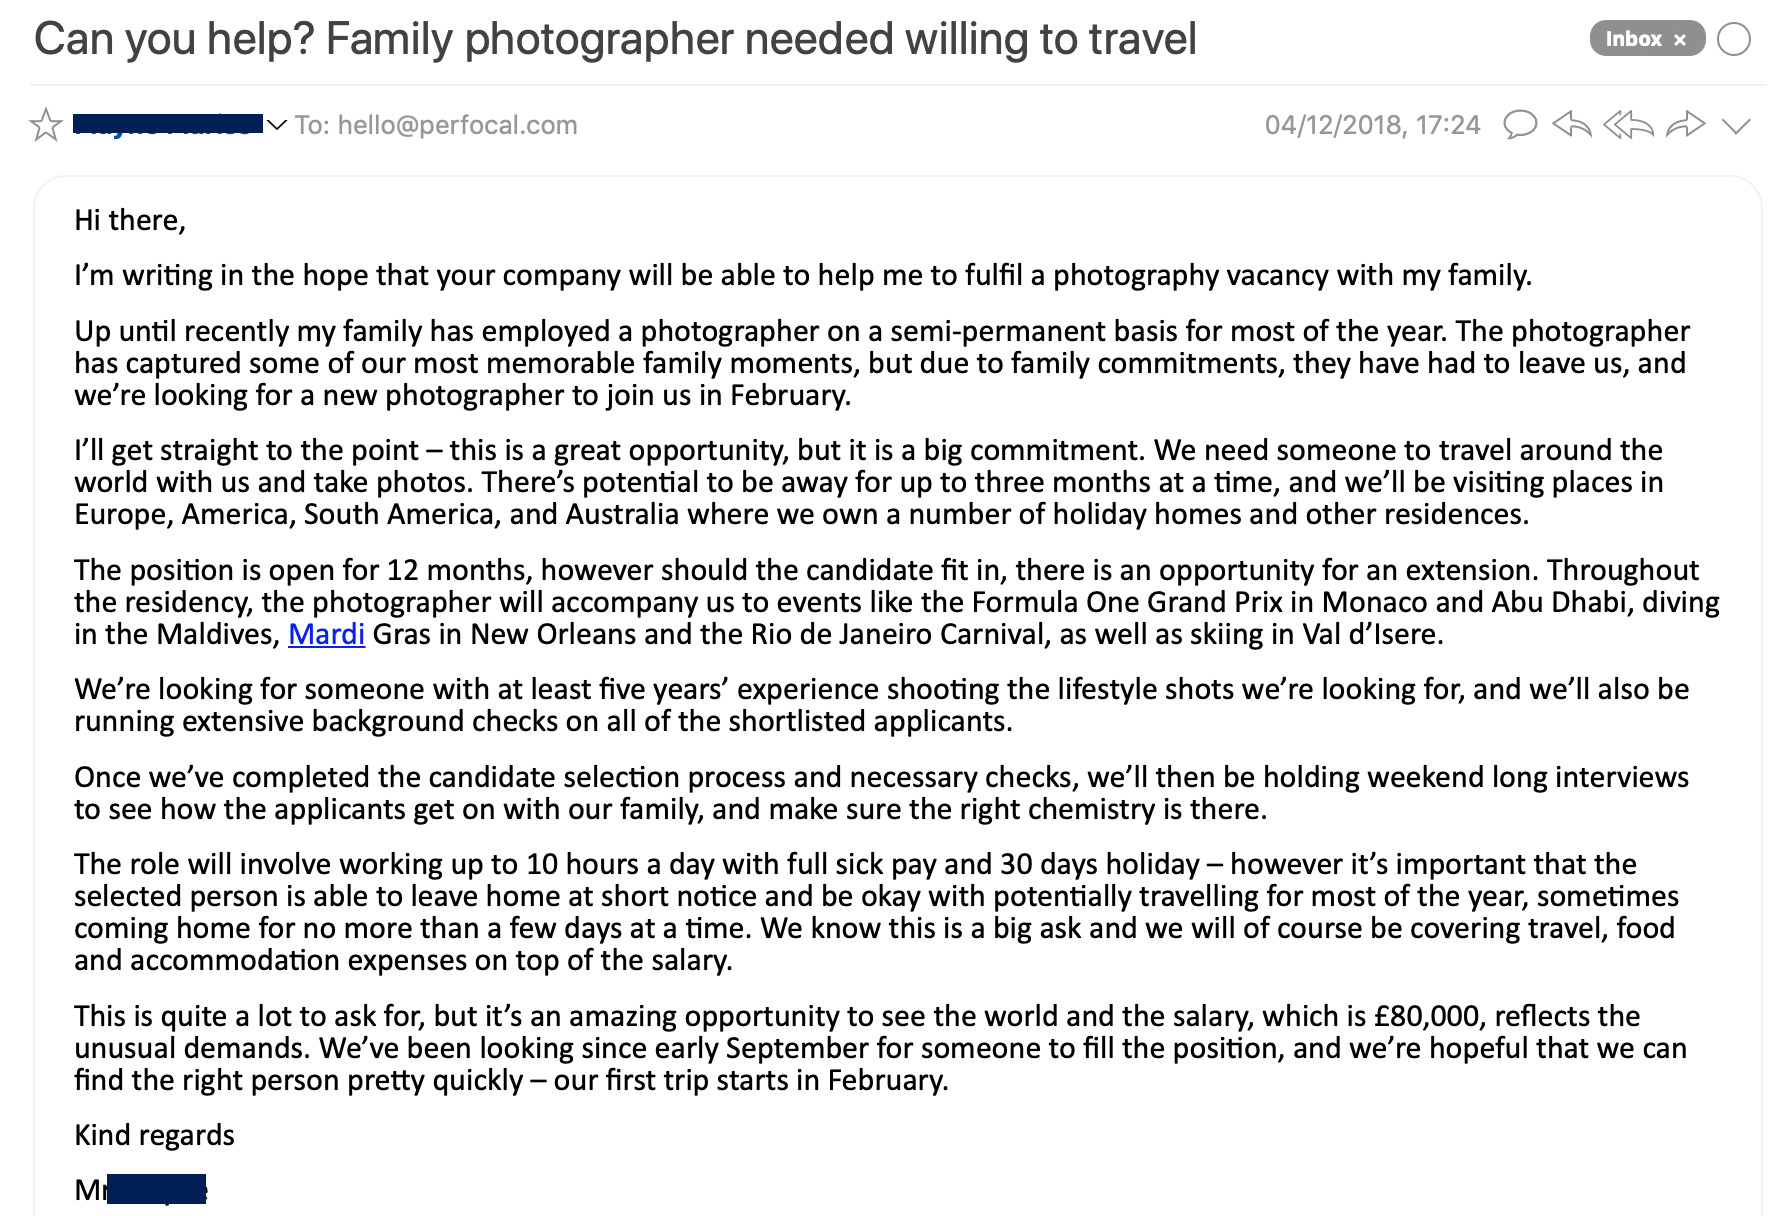 Fancy Making 80k A Year To Travel The World And Take Photos Well